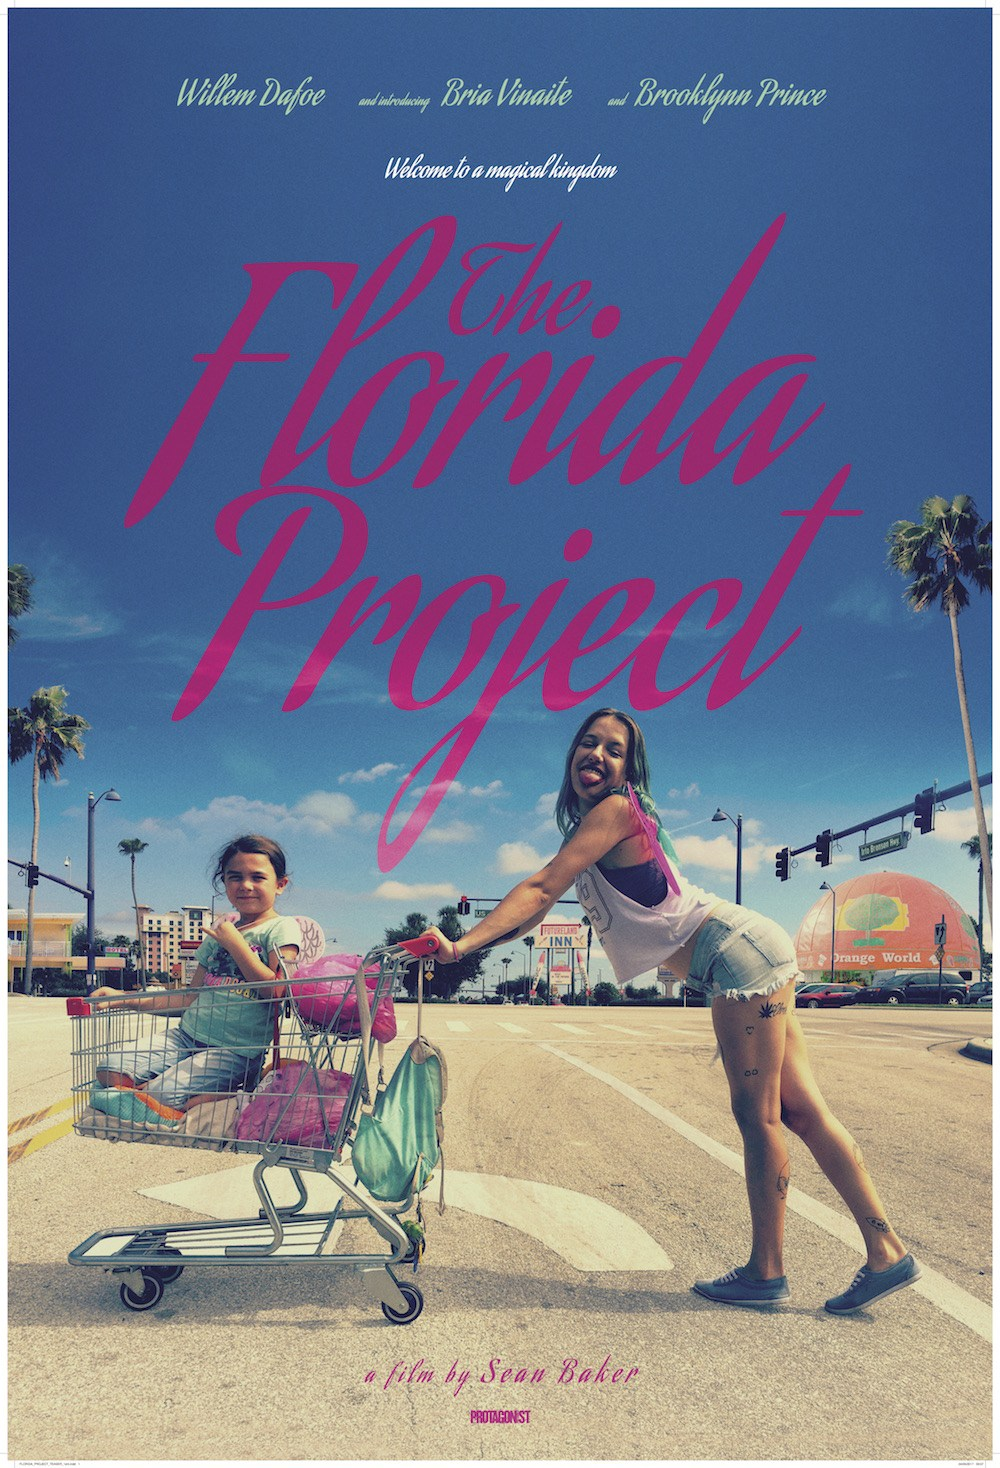 College of Arts & Letters Fall 2018 Film Series - The Florida Project